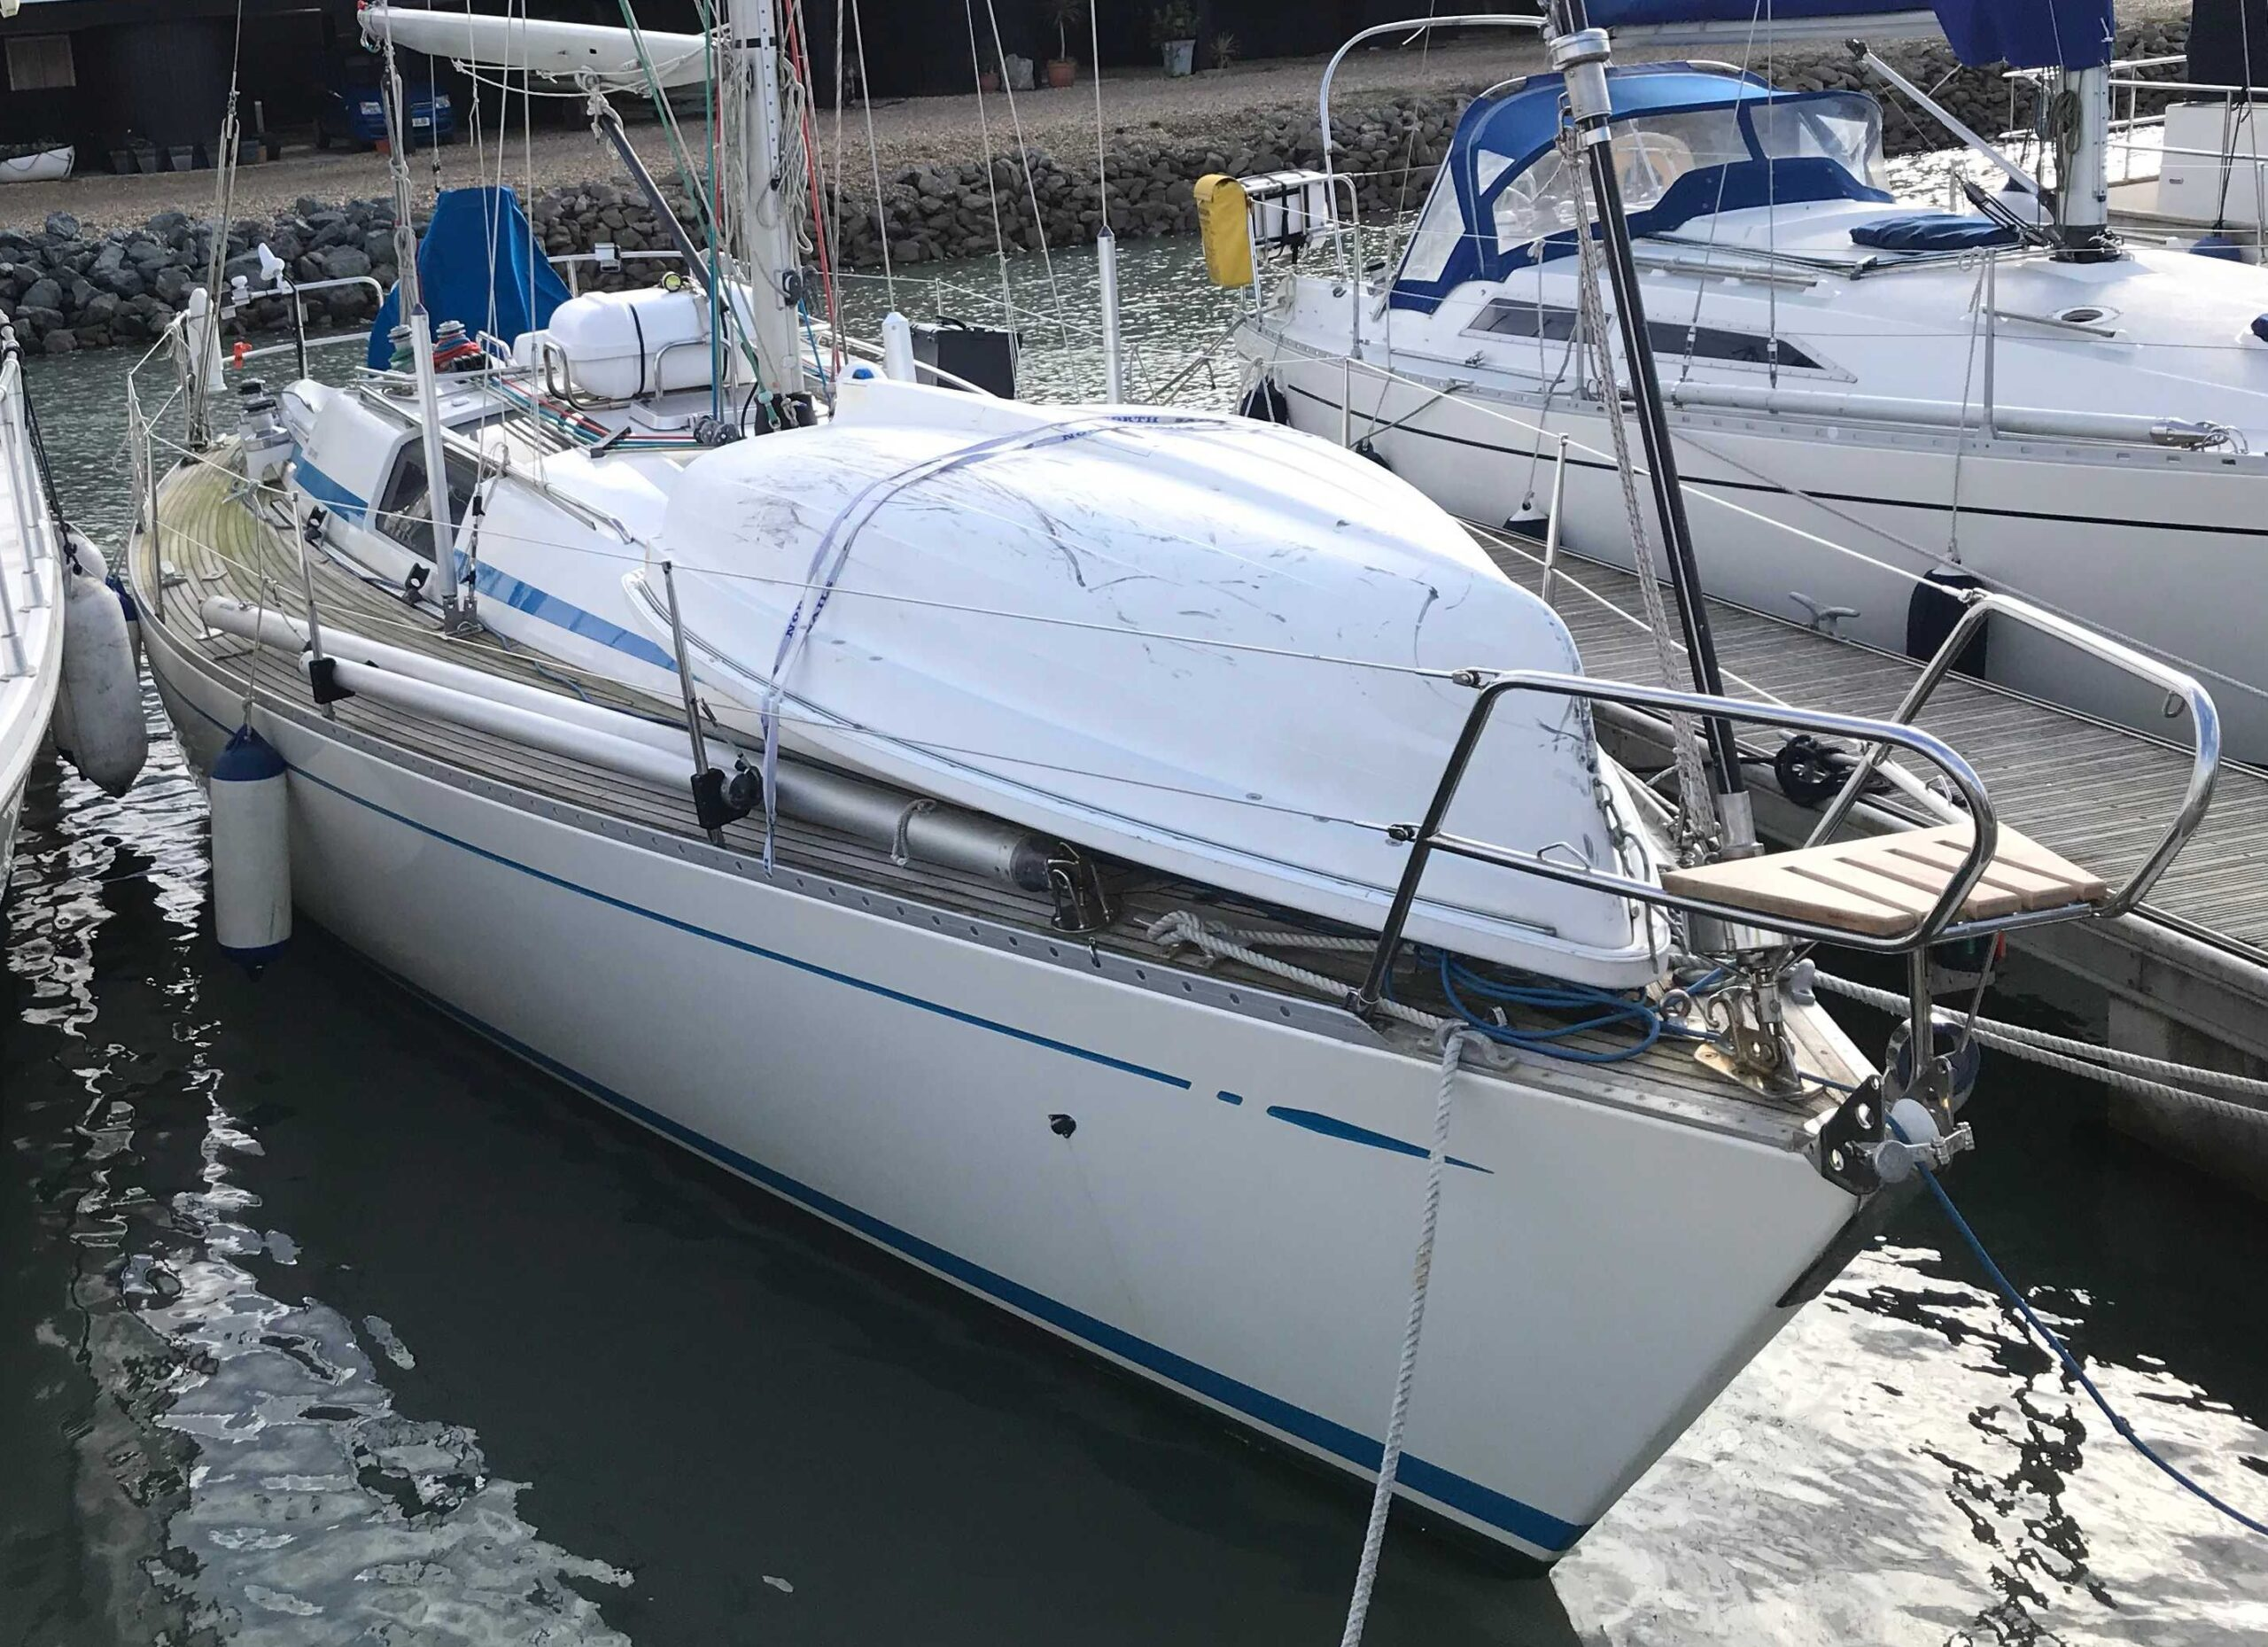 Insurance Survey of Swan 36 at Emsworth Yacht Harbour